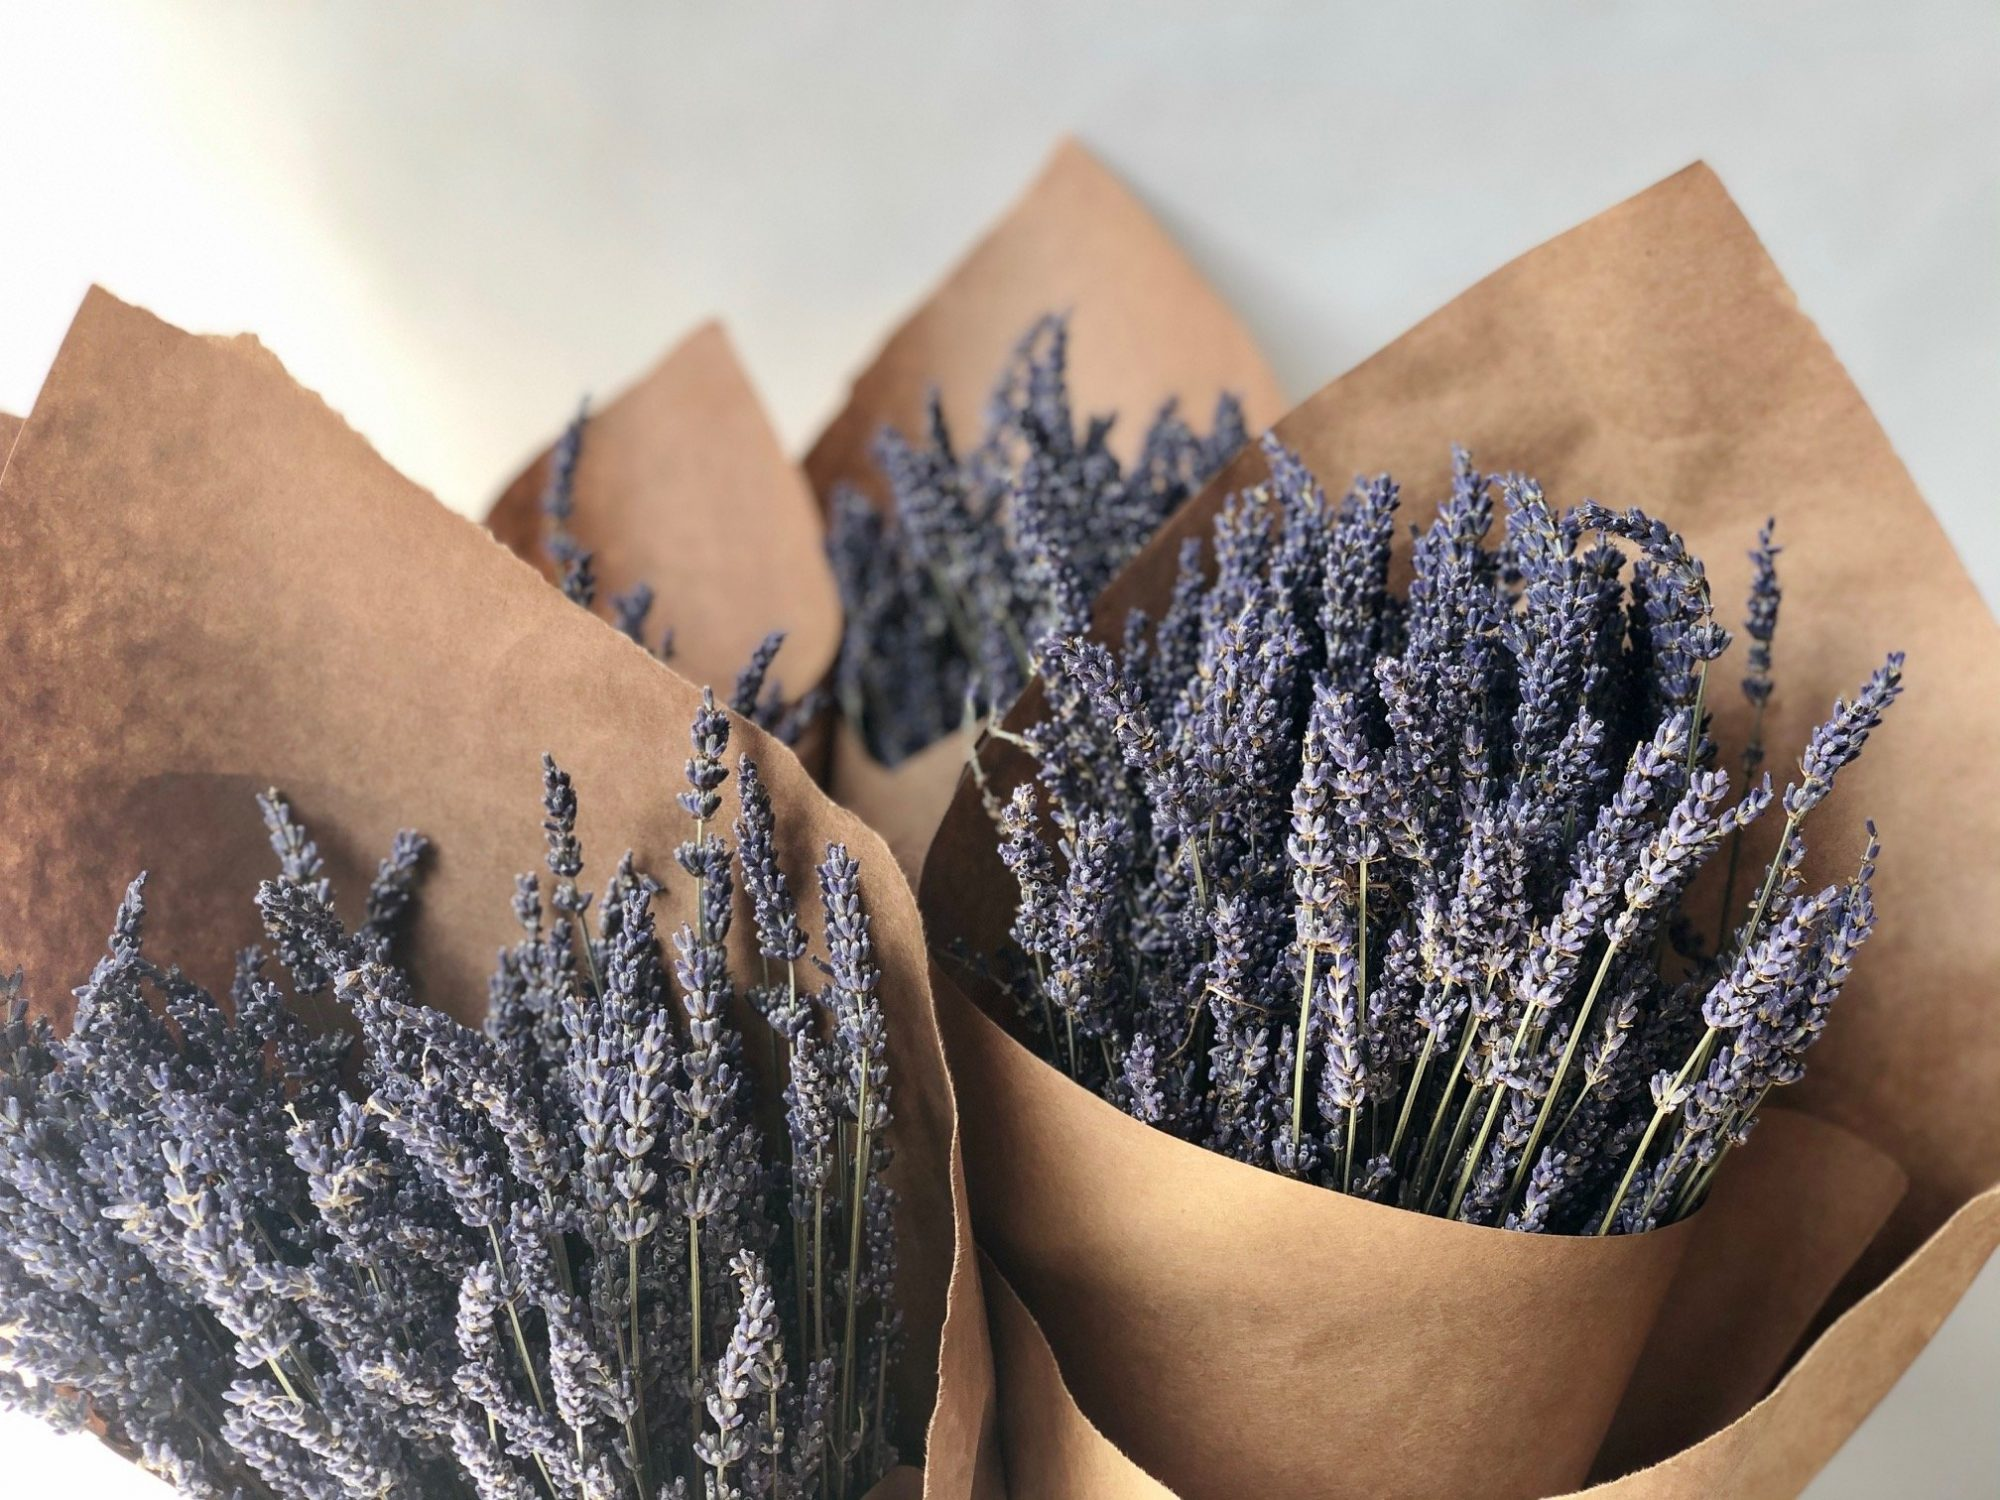 Dried Lavender from the South of France